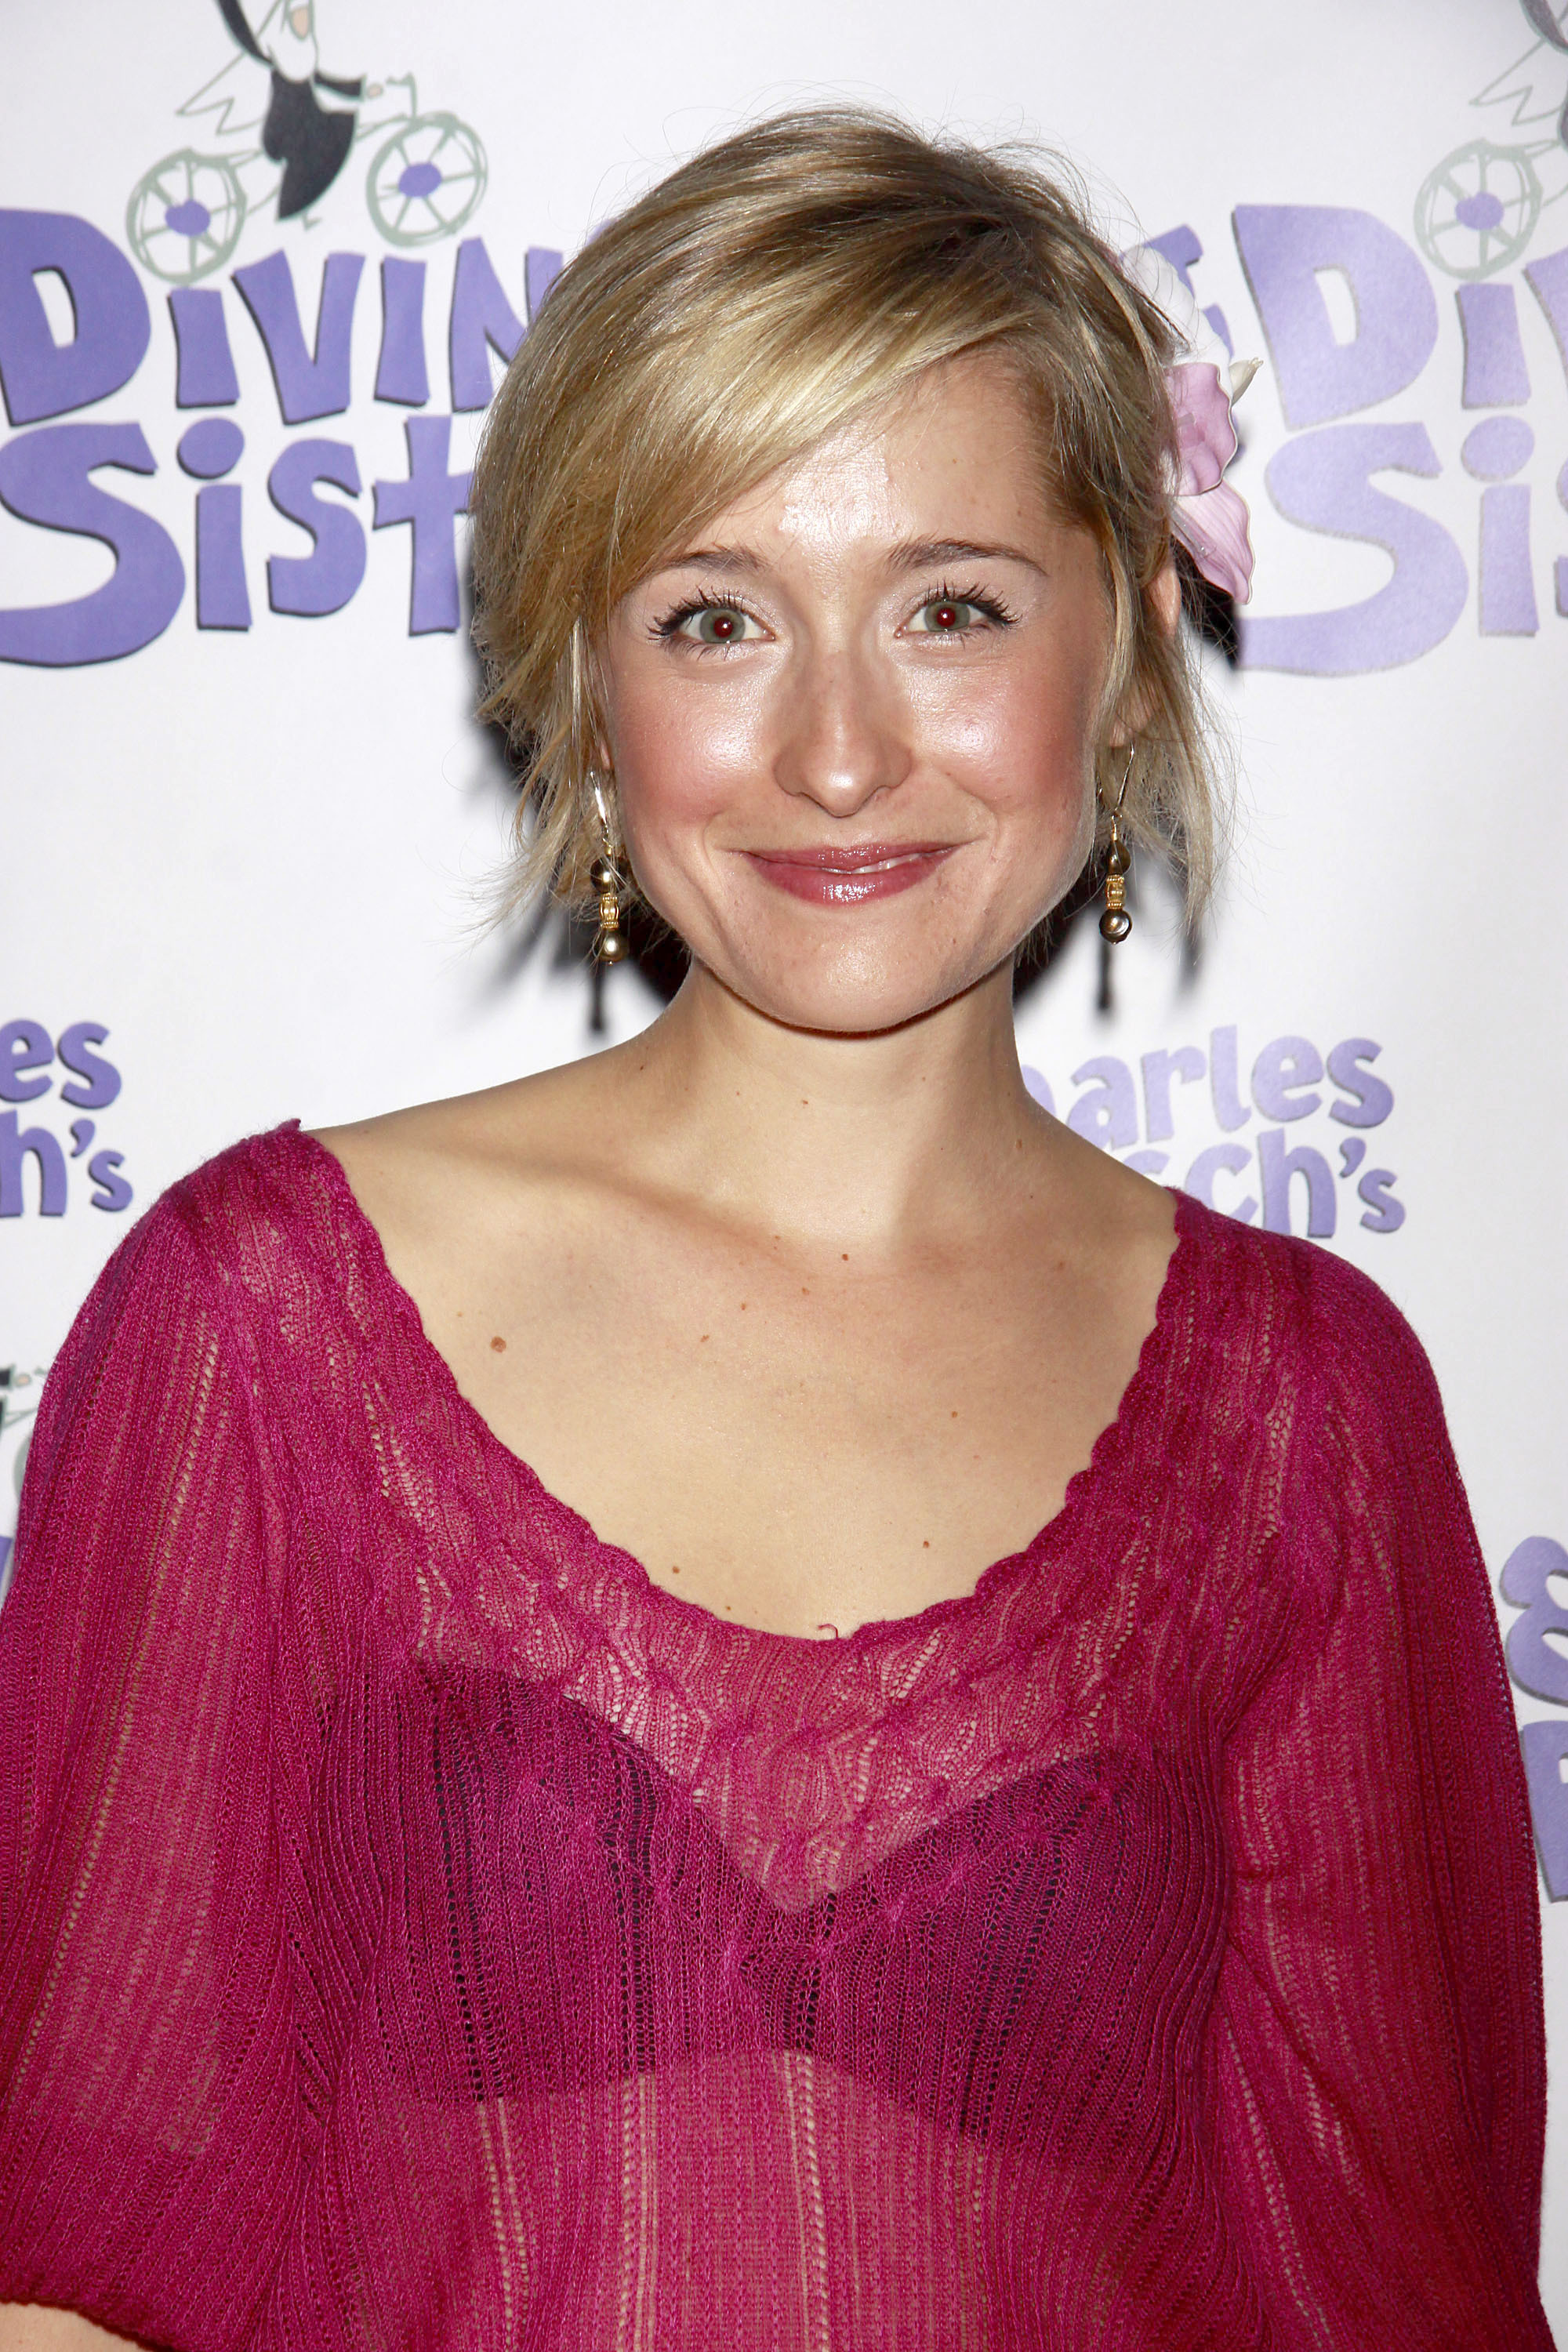 30 Hot And Sexy Pictures Of Allison Mack Will Make Fall In ...Allison Mack